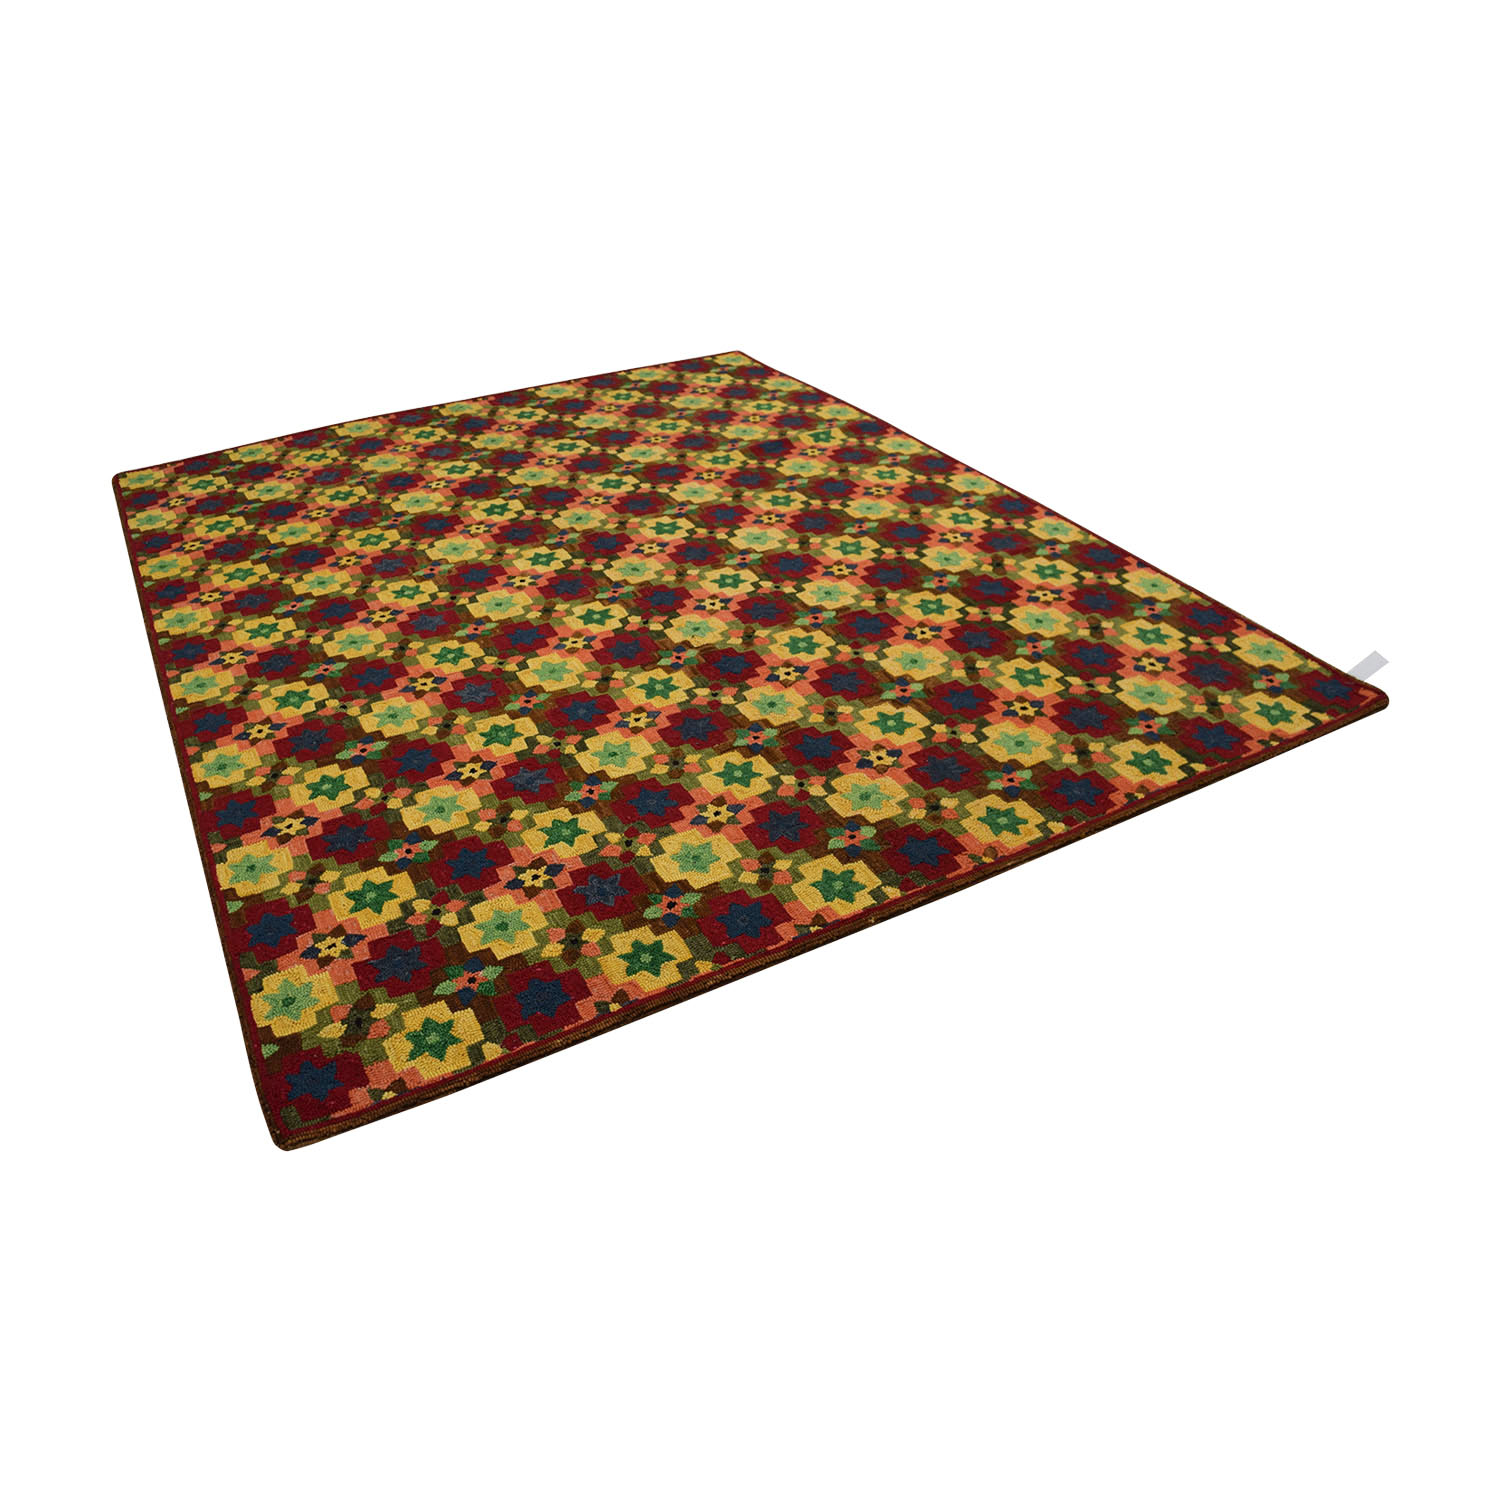 Obeetee Obeetee Hand Hooked Multi Colored Floral Rug